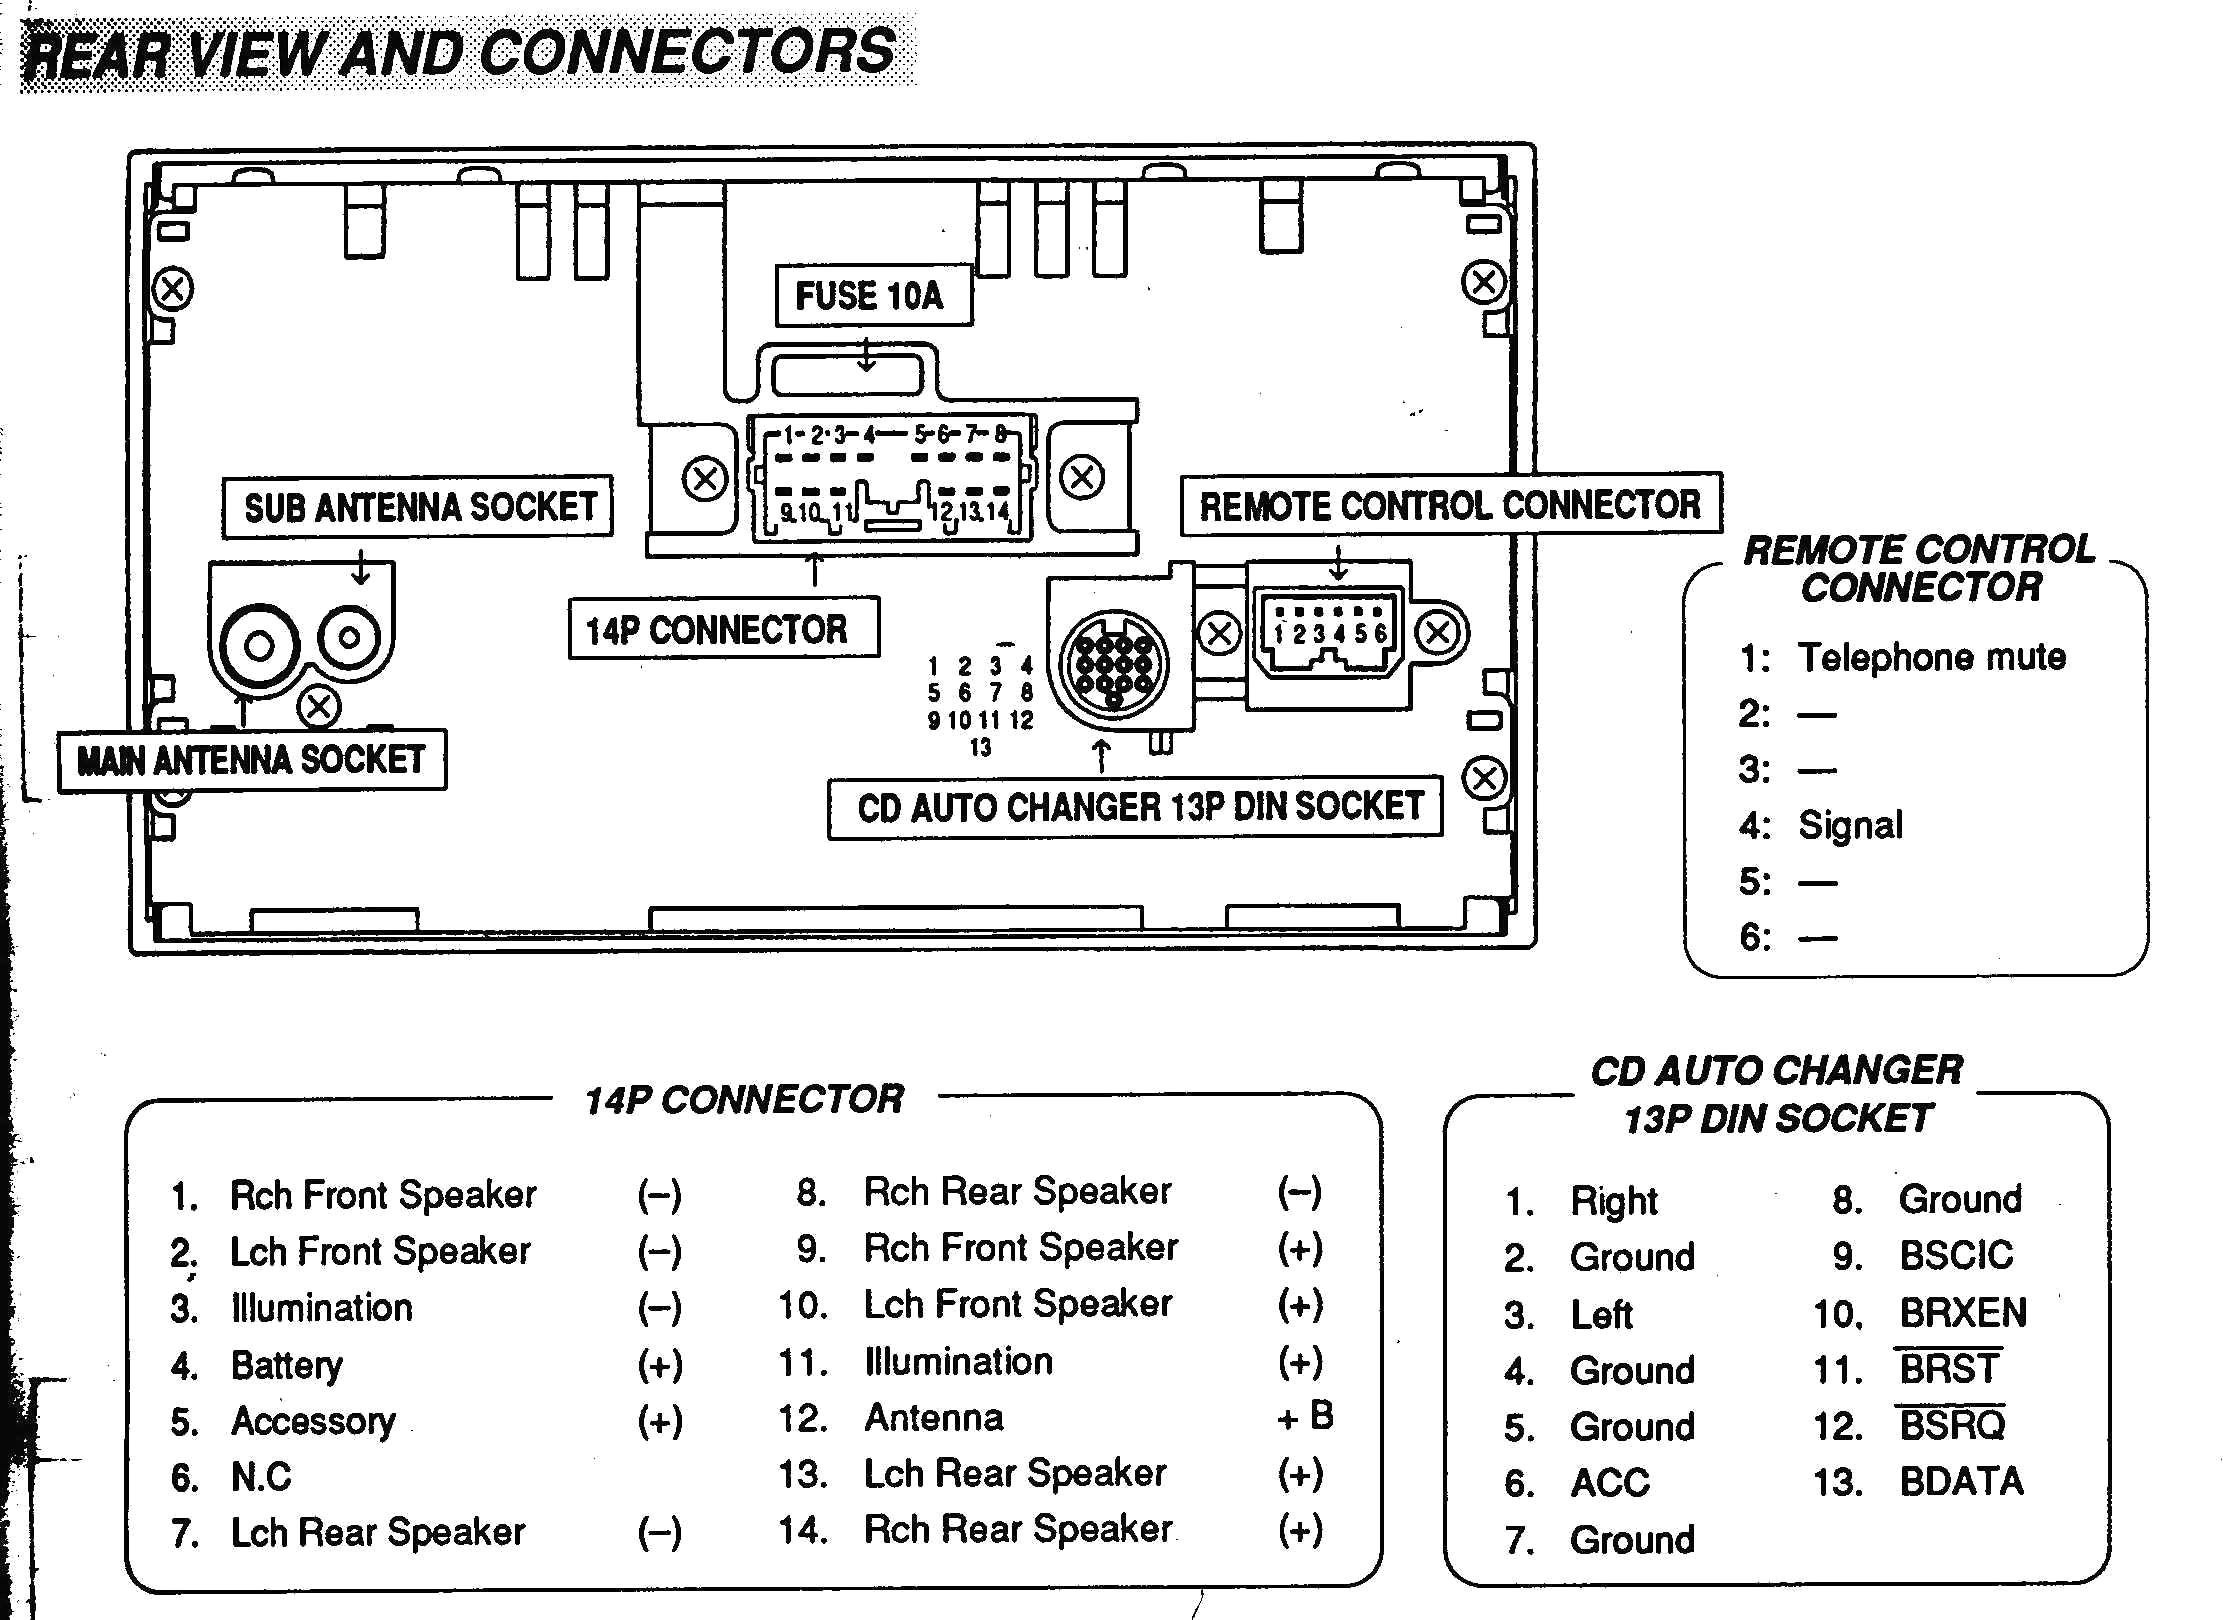 Wiring Diagram for Car Audio Car with Detaleted Wiring and Factory Stereo Diagrams Wiring Diagram Of Wiring Diagram for Car Audio